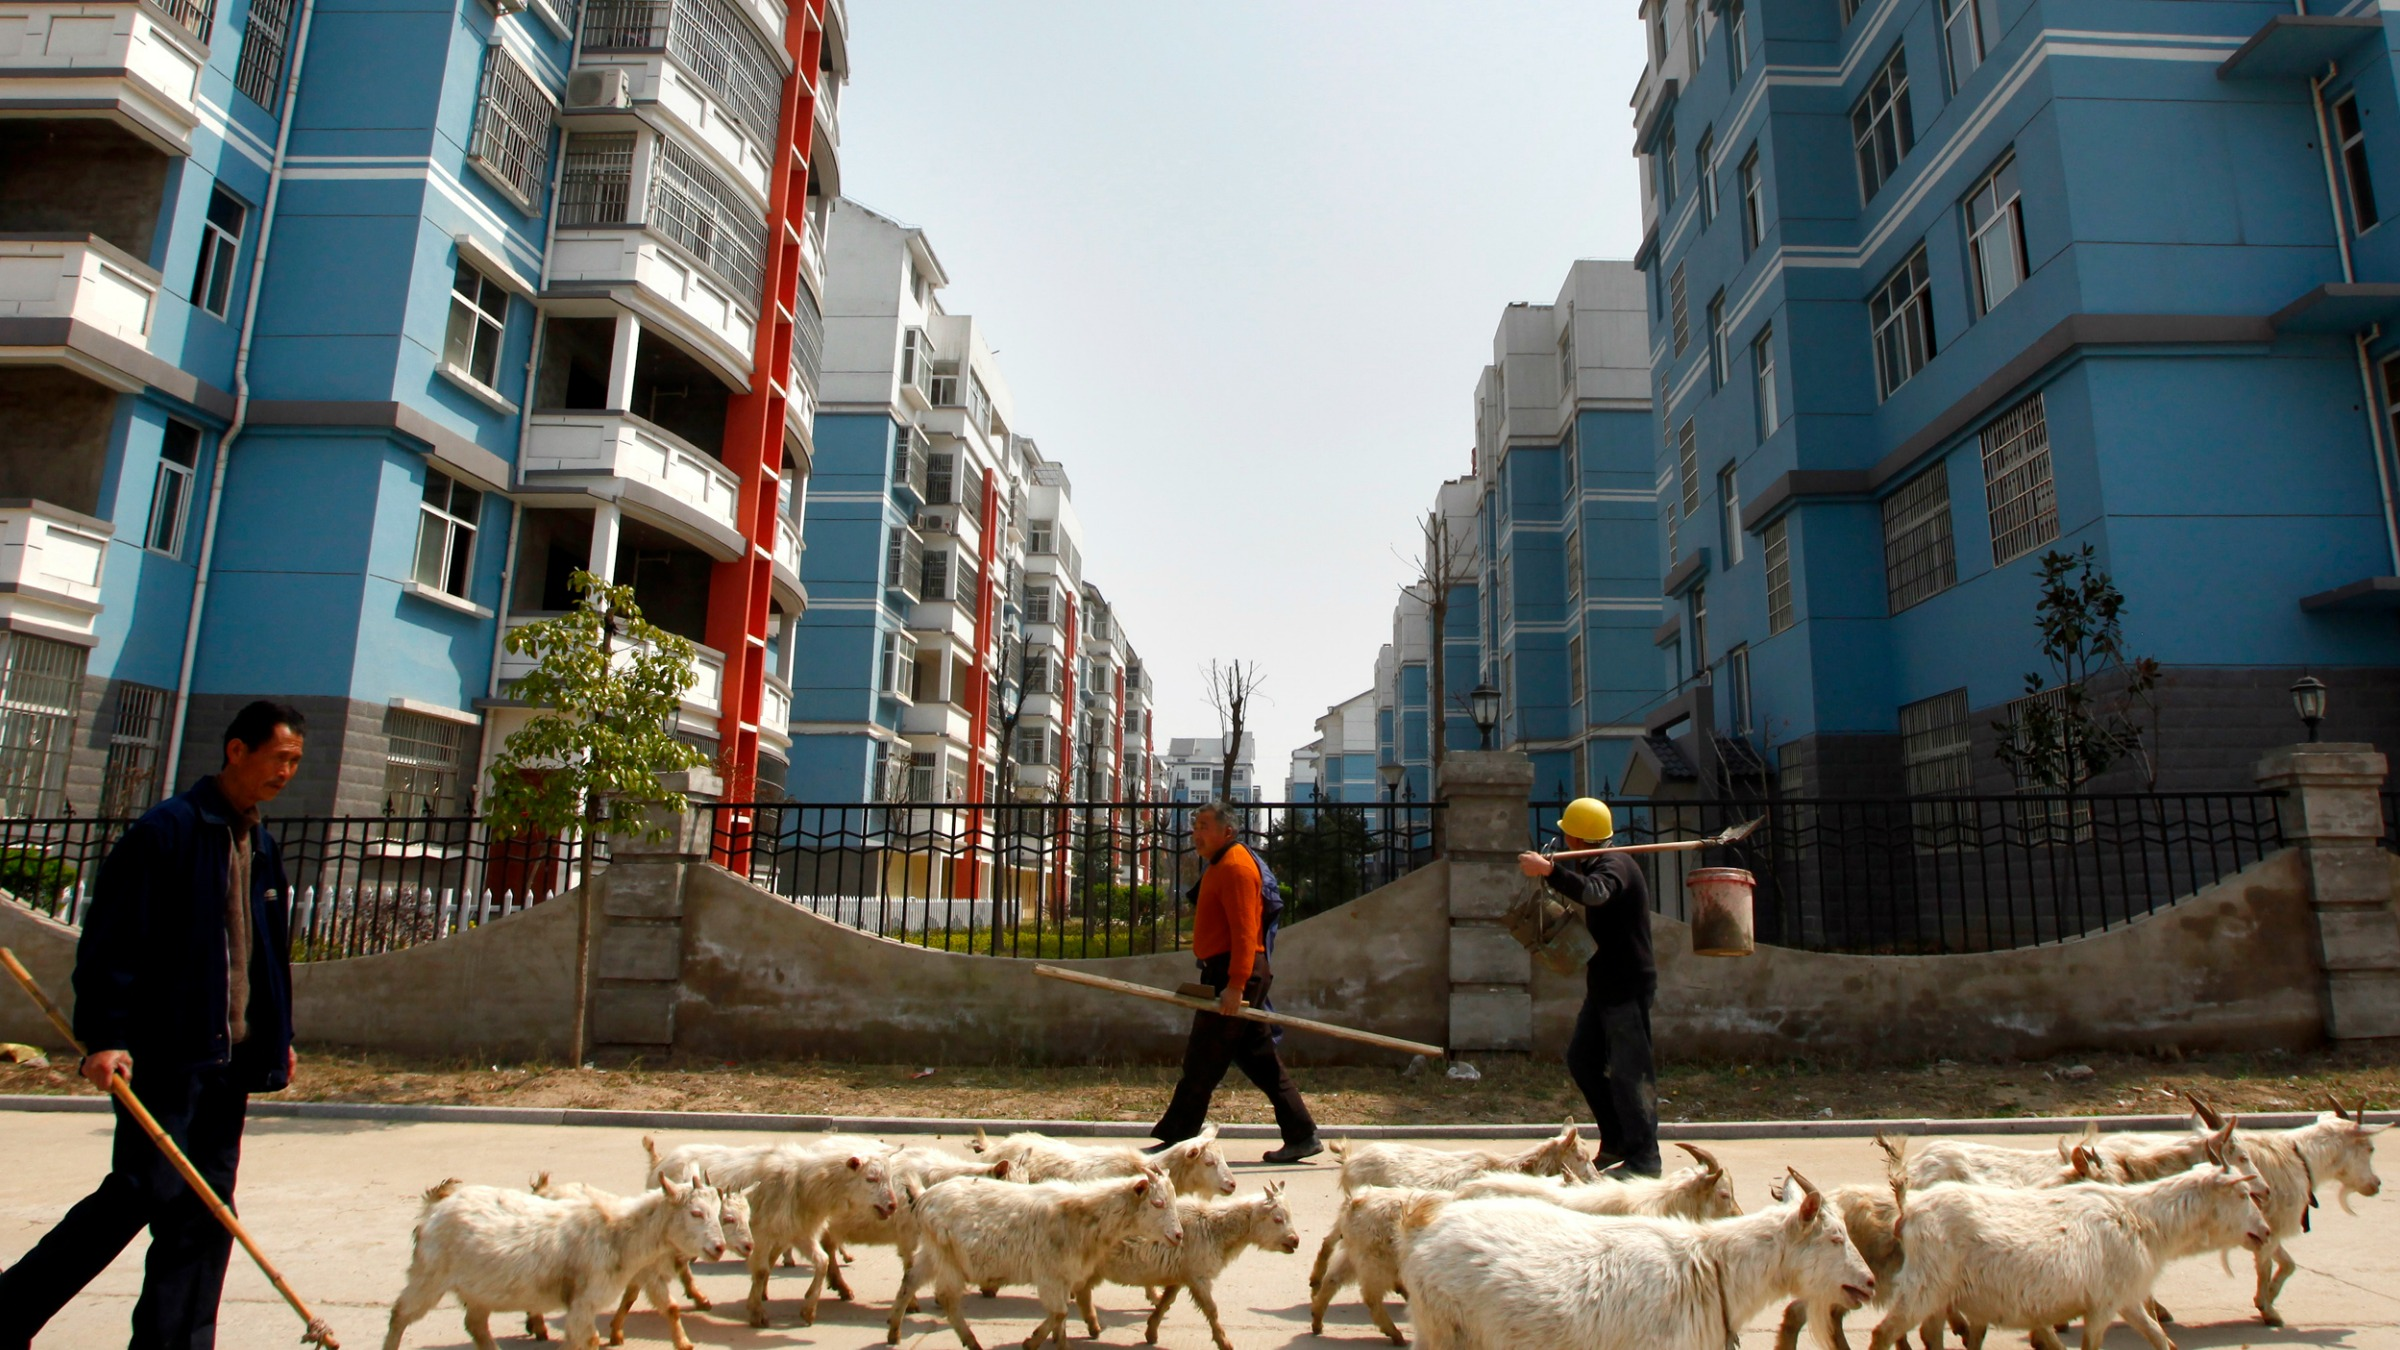 Inland provinces like Hunan still have a ways to go—and grow.